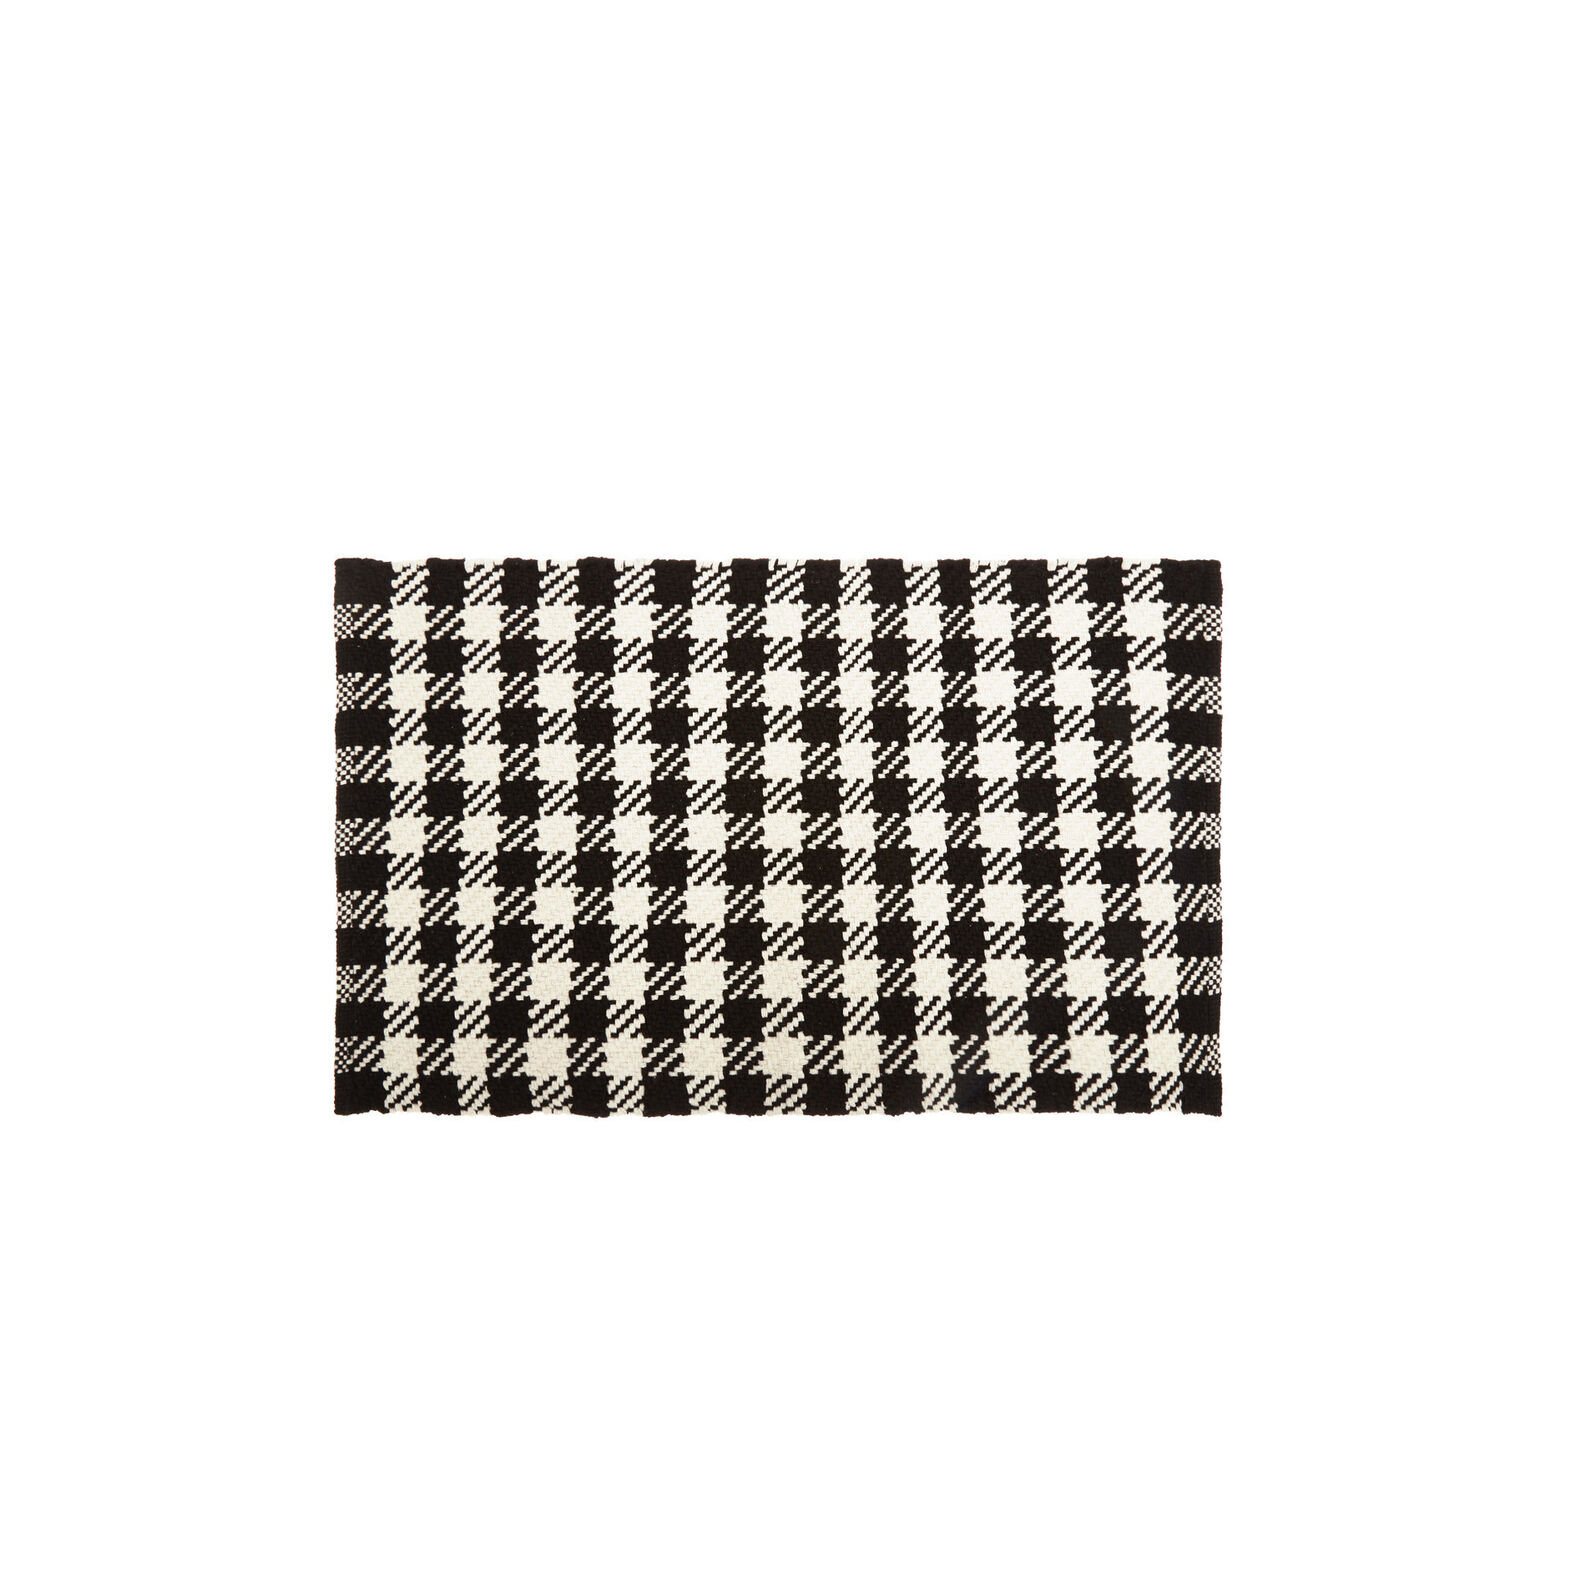 Woven cotton door mat with check design